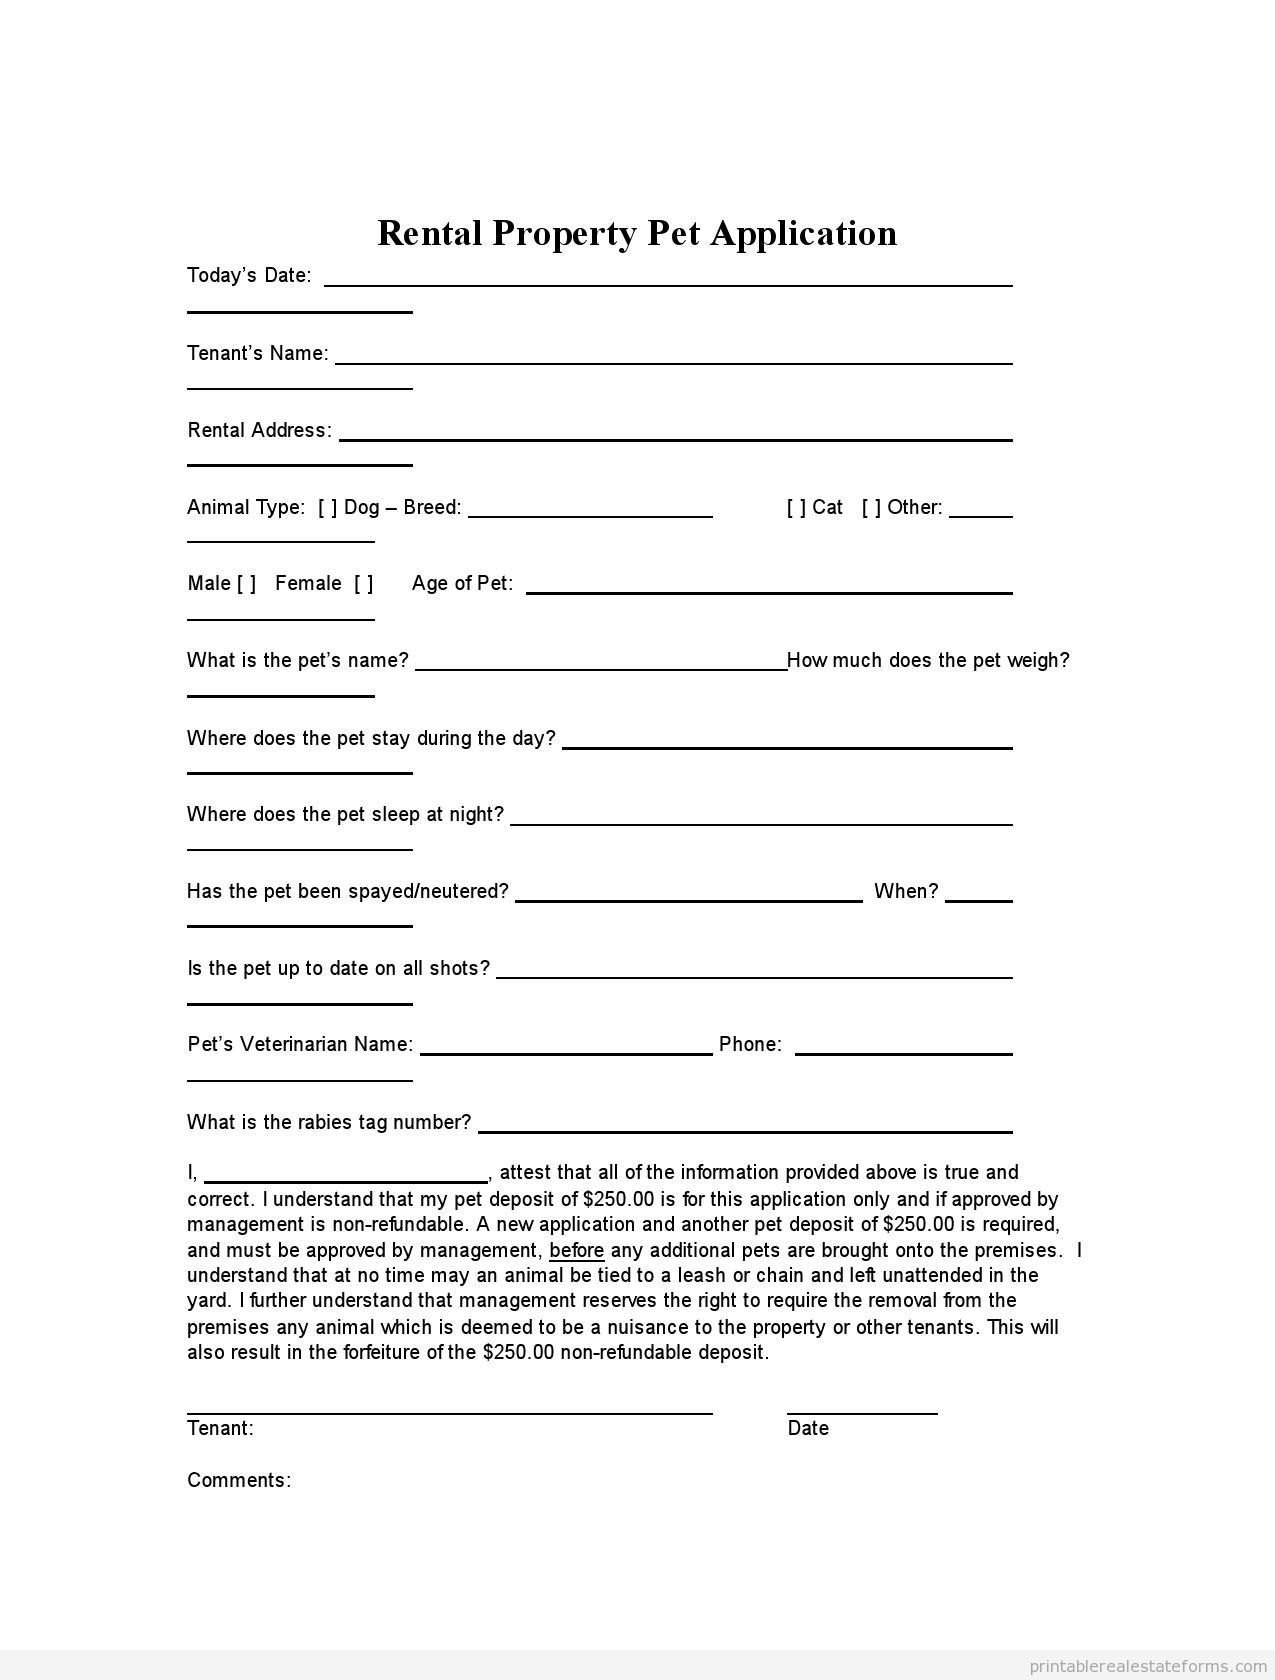 rental property application form template